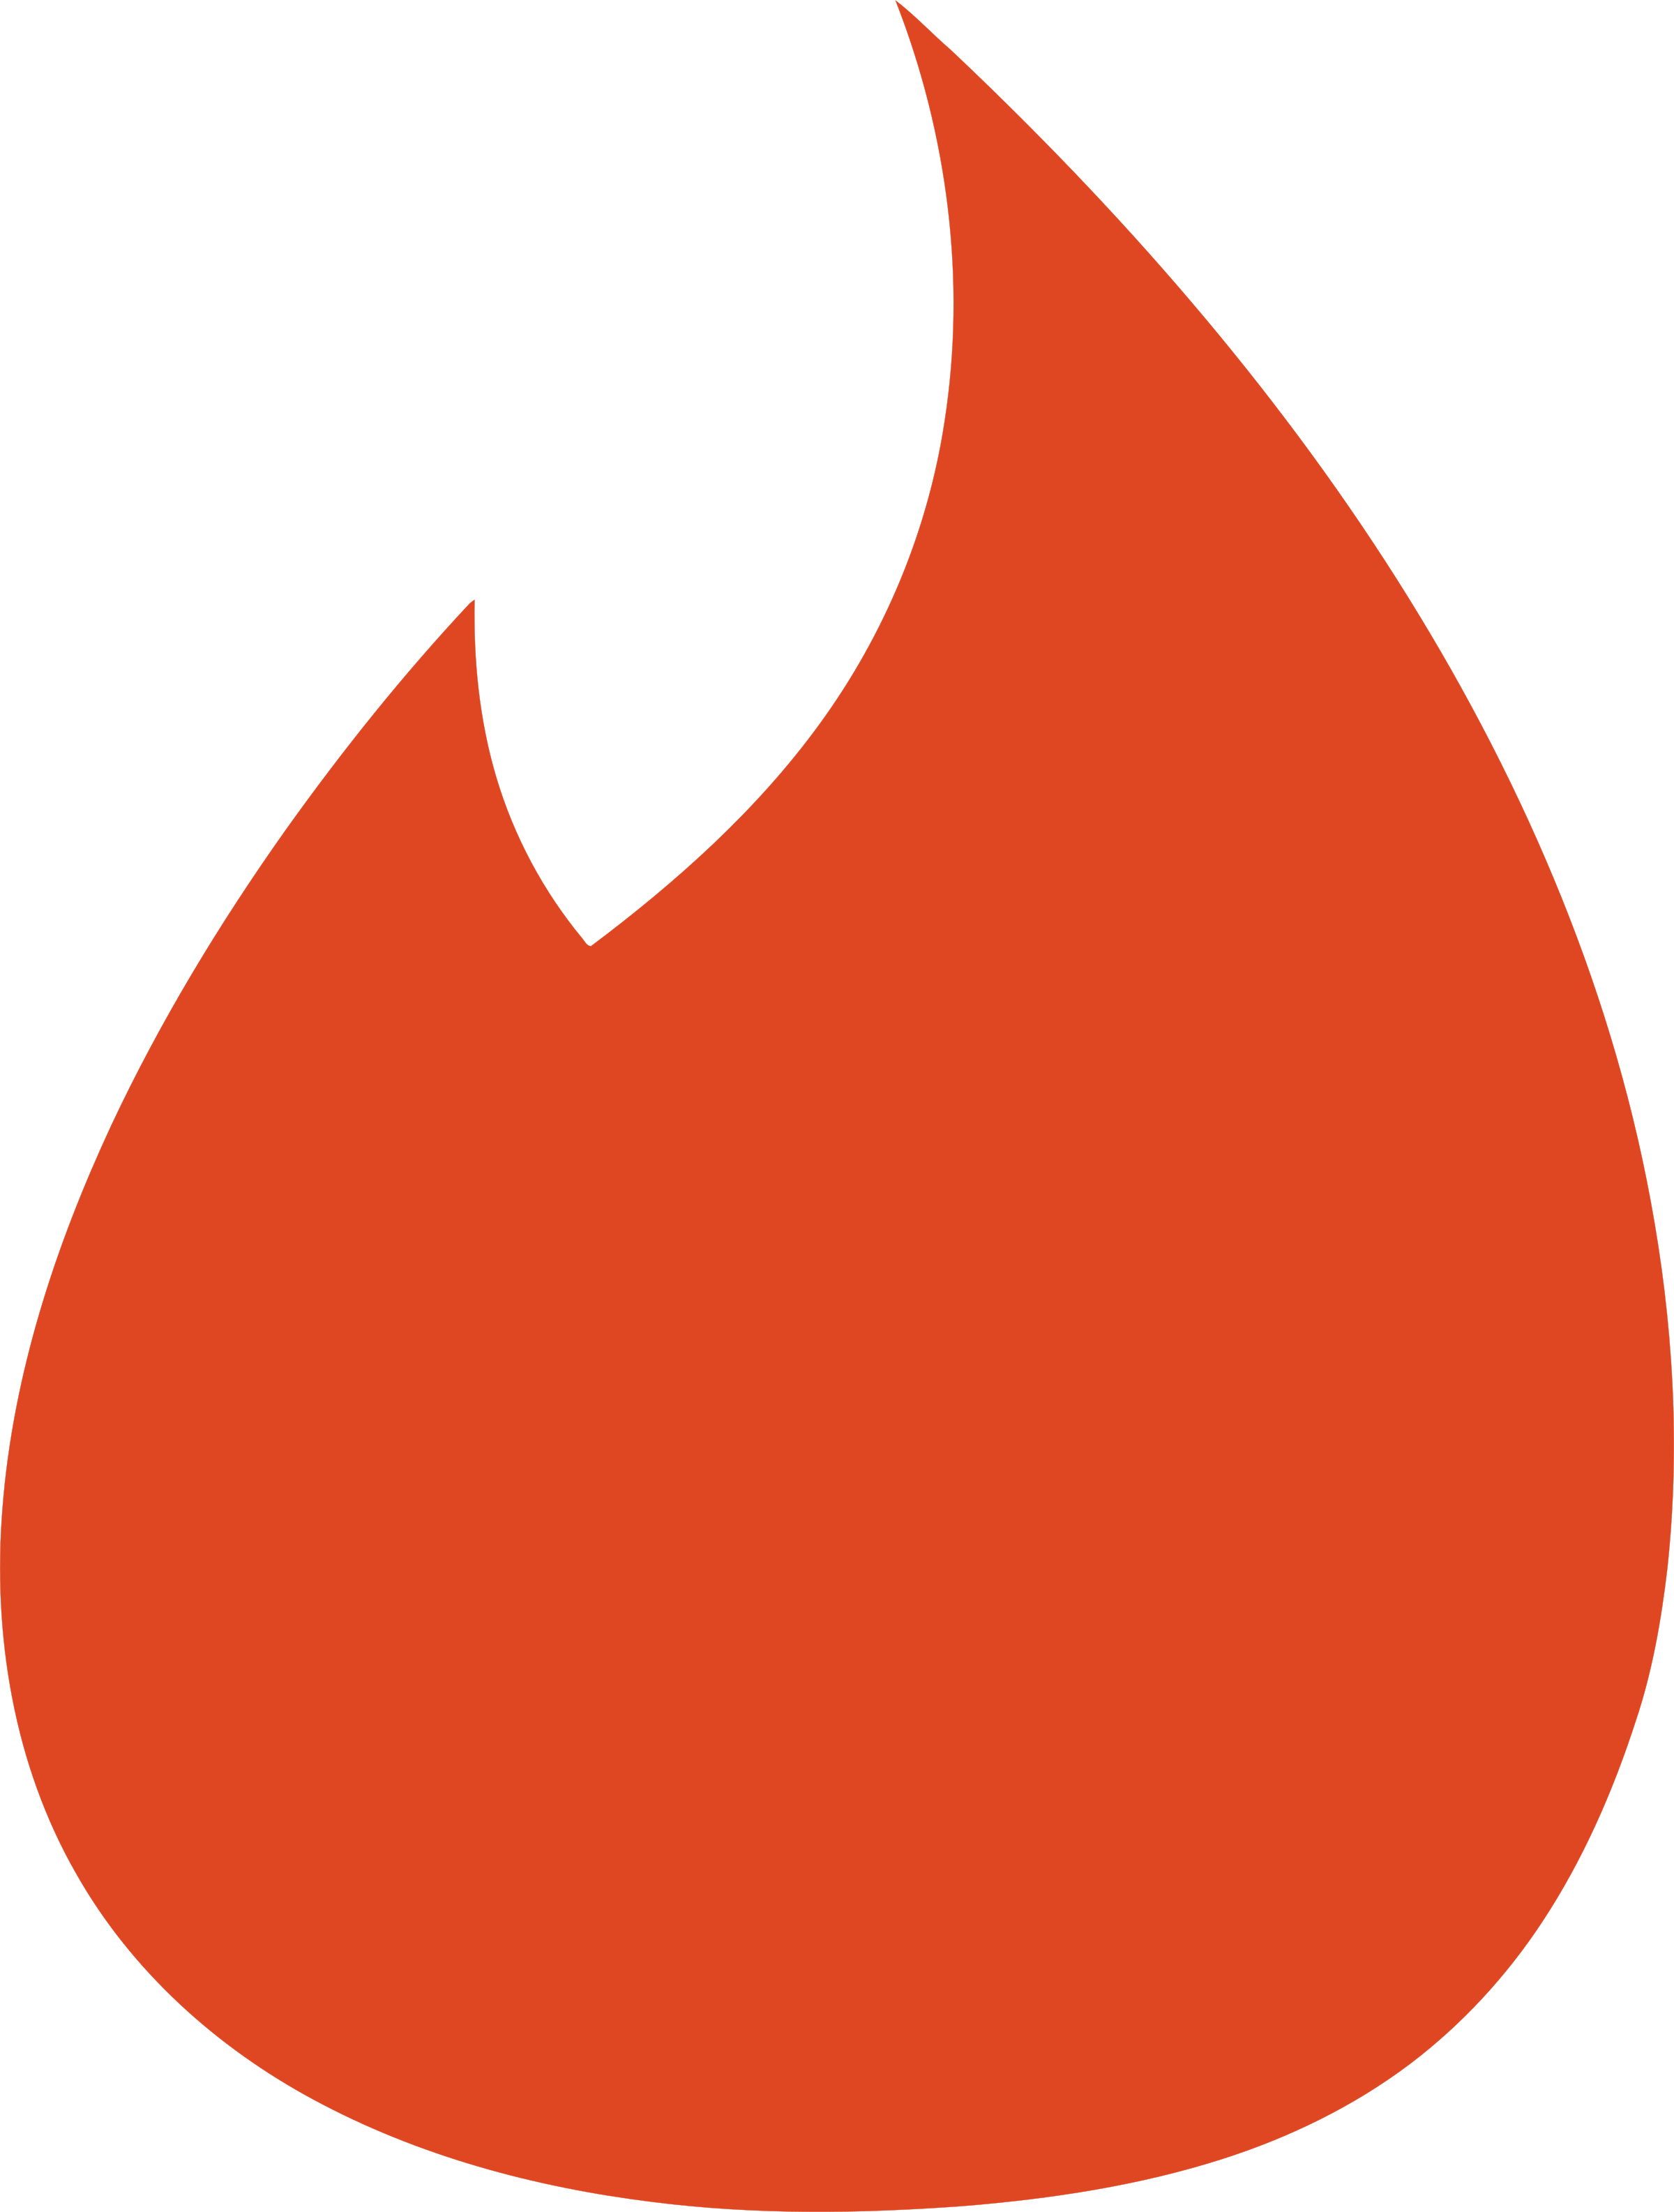 Tinder logo png. Icon transparent svg vector